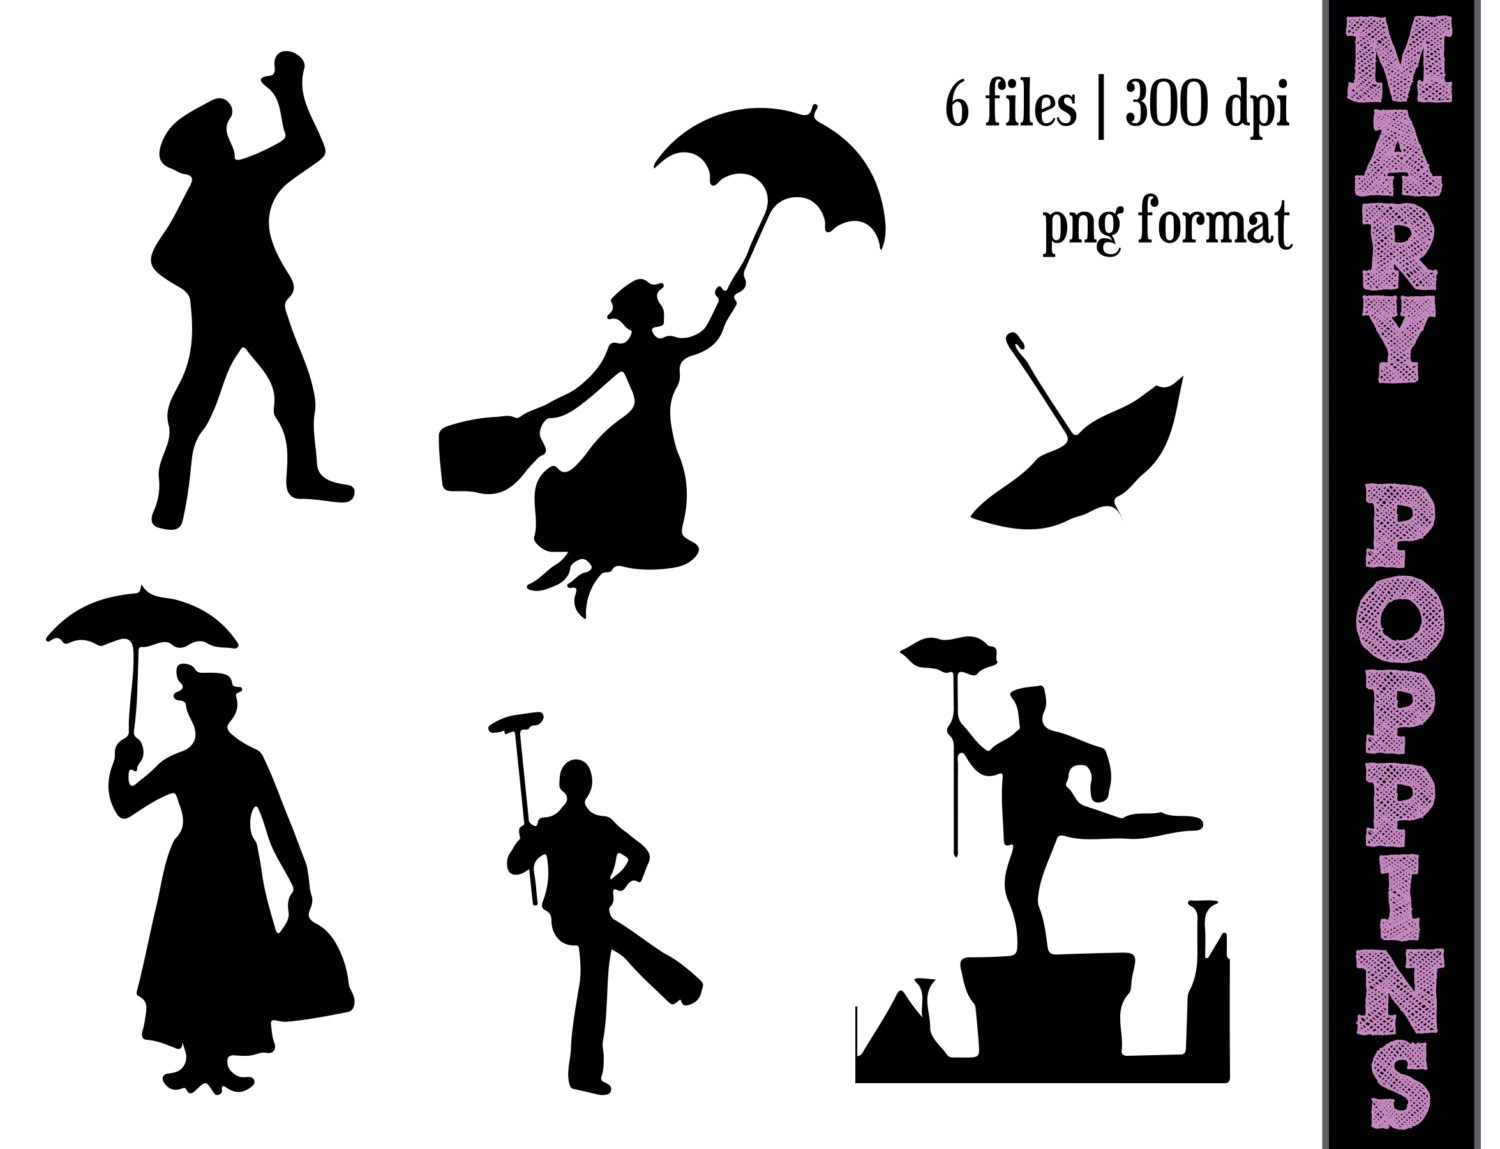 Mary Poppins Silhouettes A Spoonful Of Sugar Silhouette